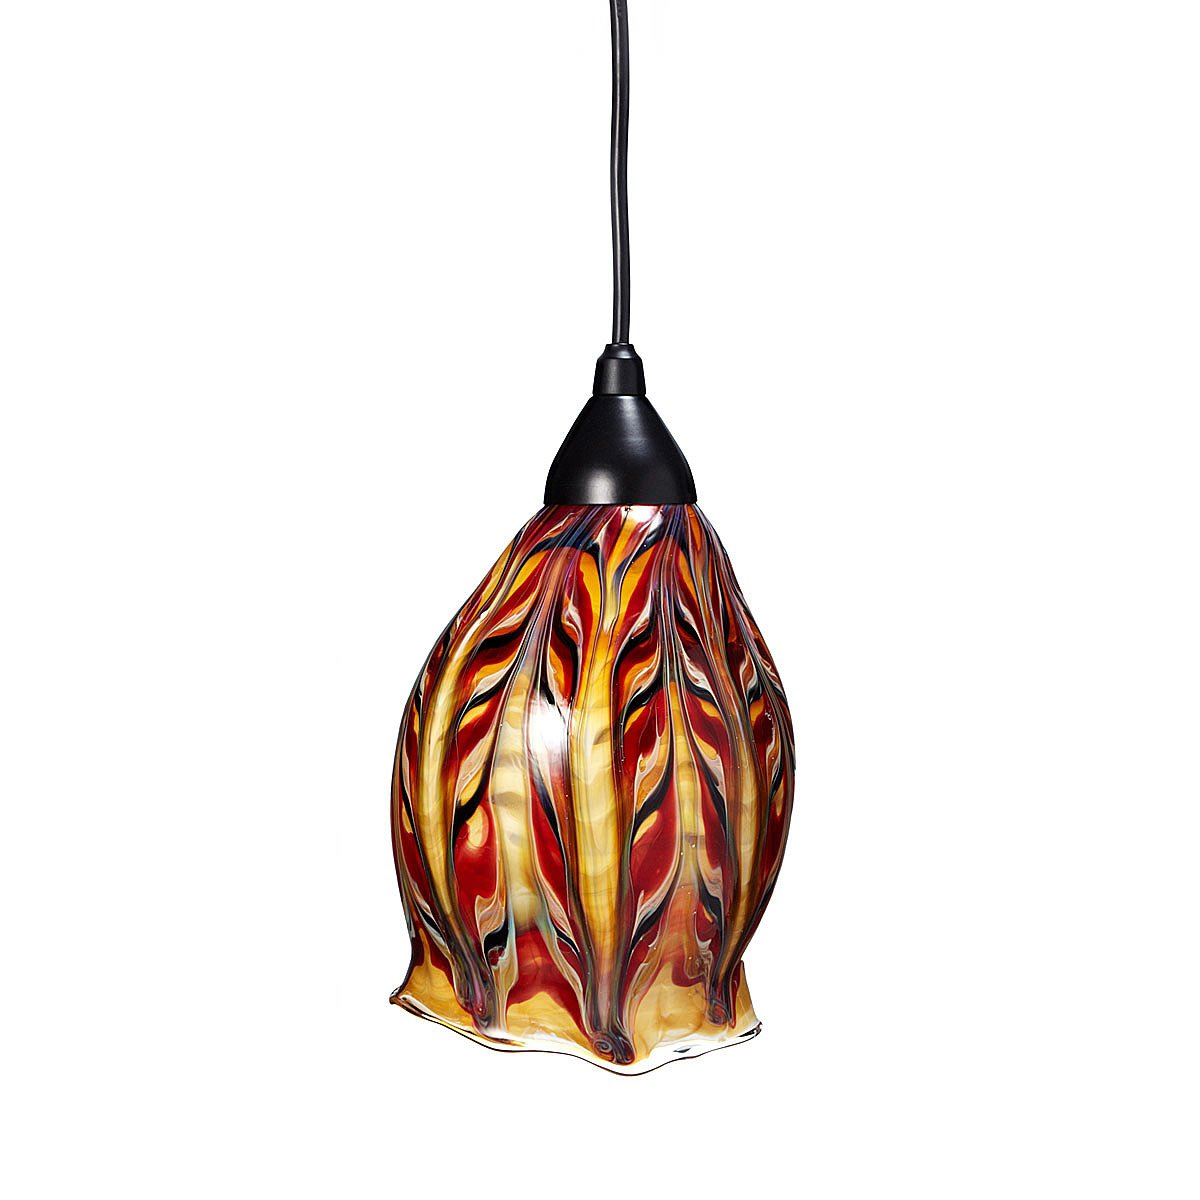 glass feather pendant light hand blown glass ceiling lamp jim. Black Bedroom Furniture Sets. Home Design Ideas